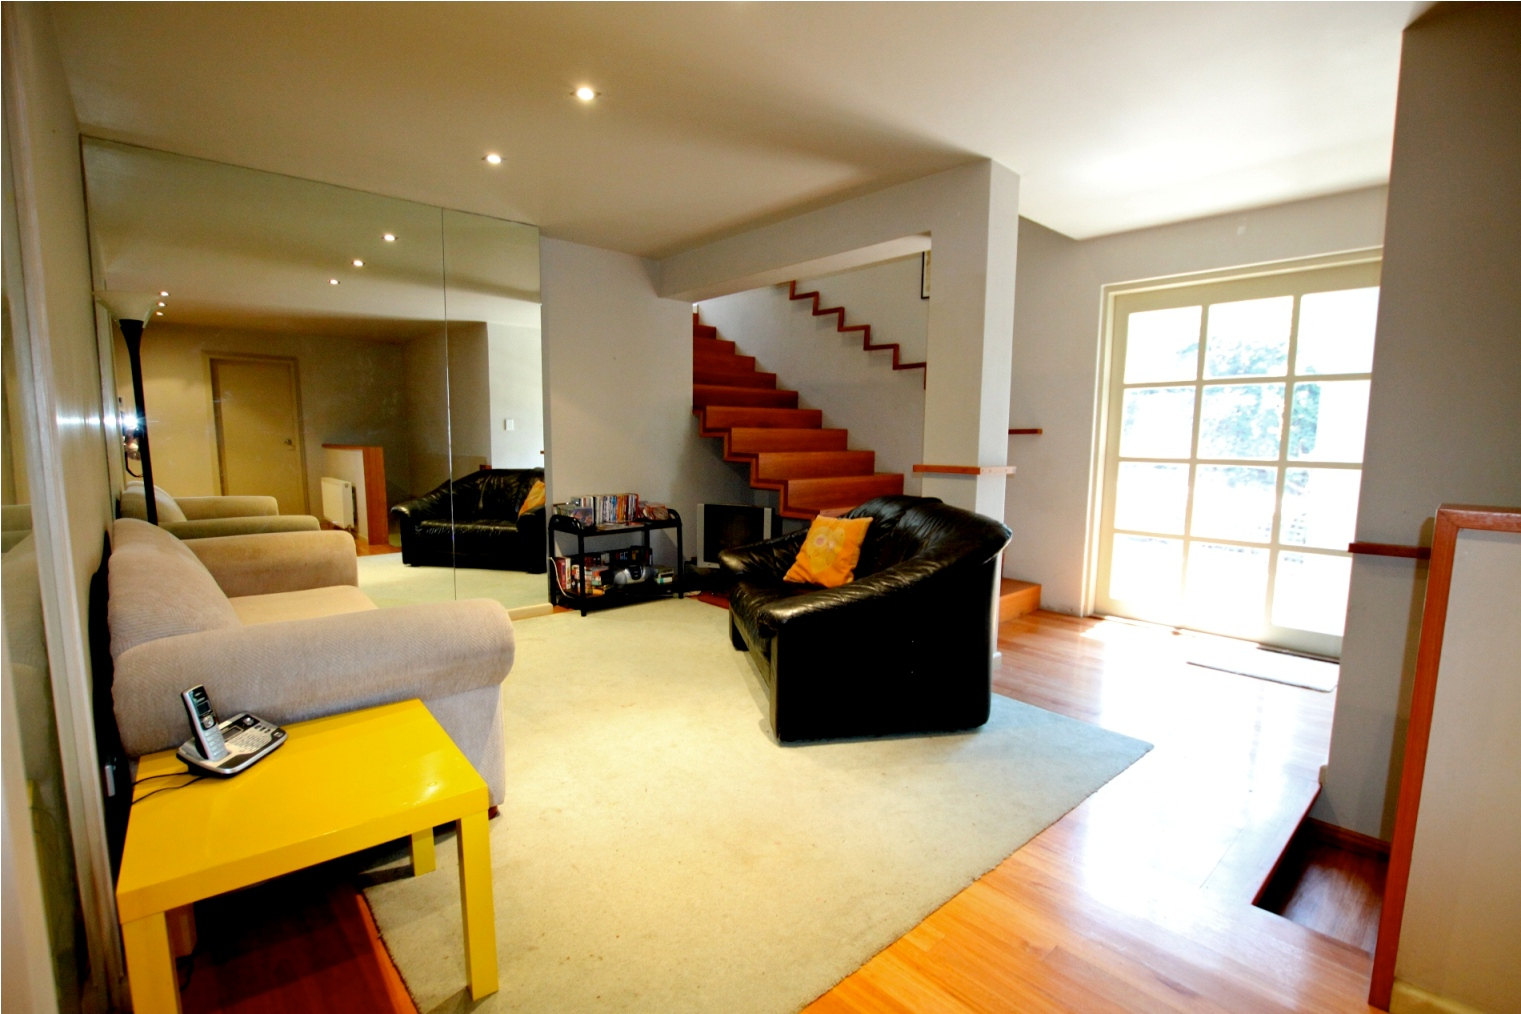 New family room & staircase